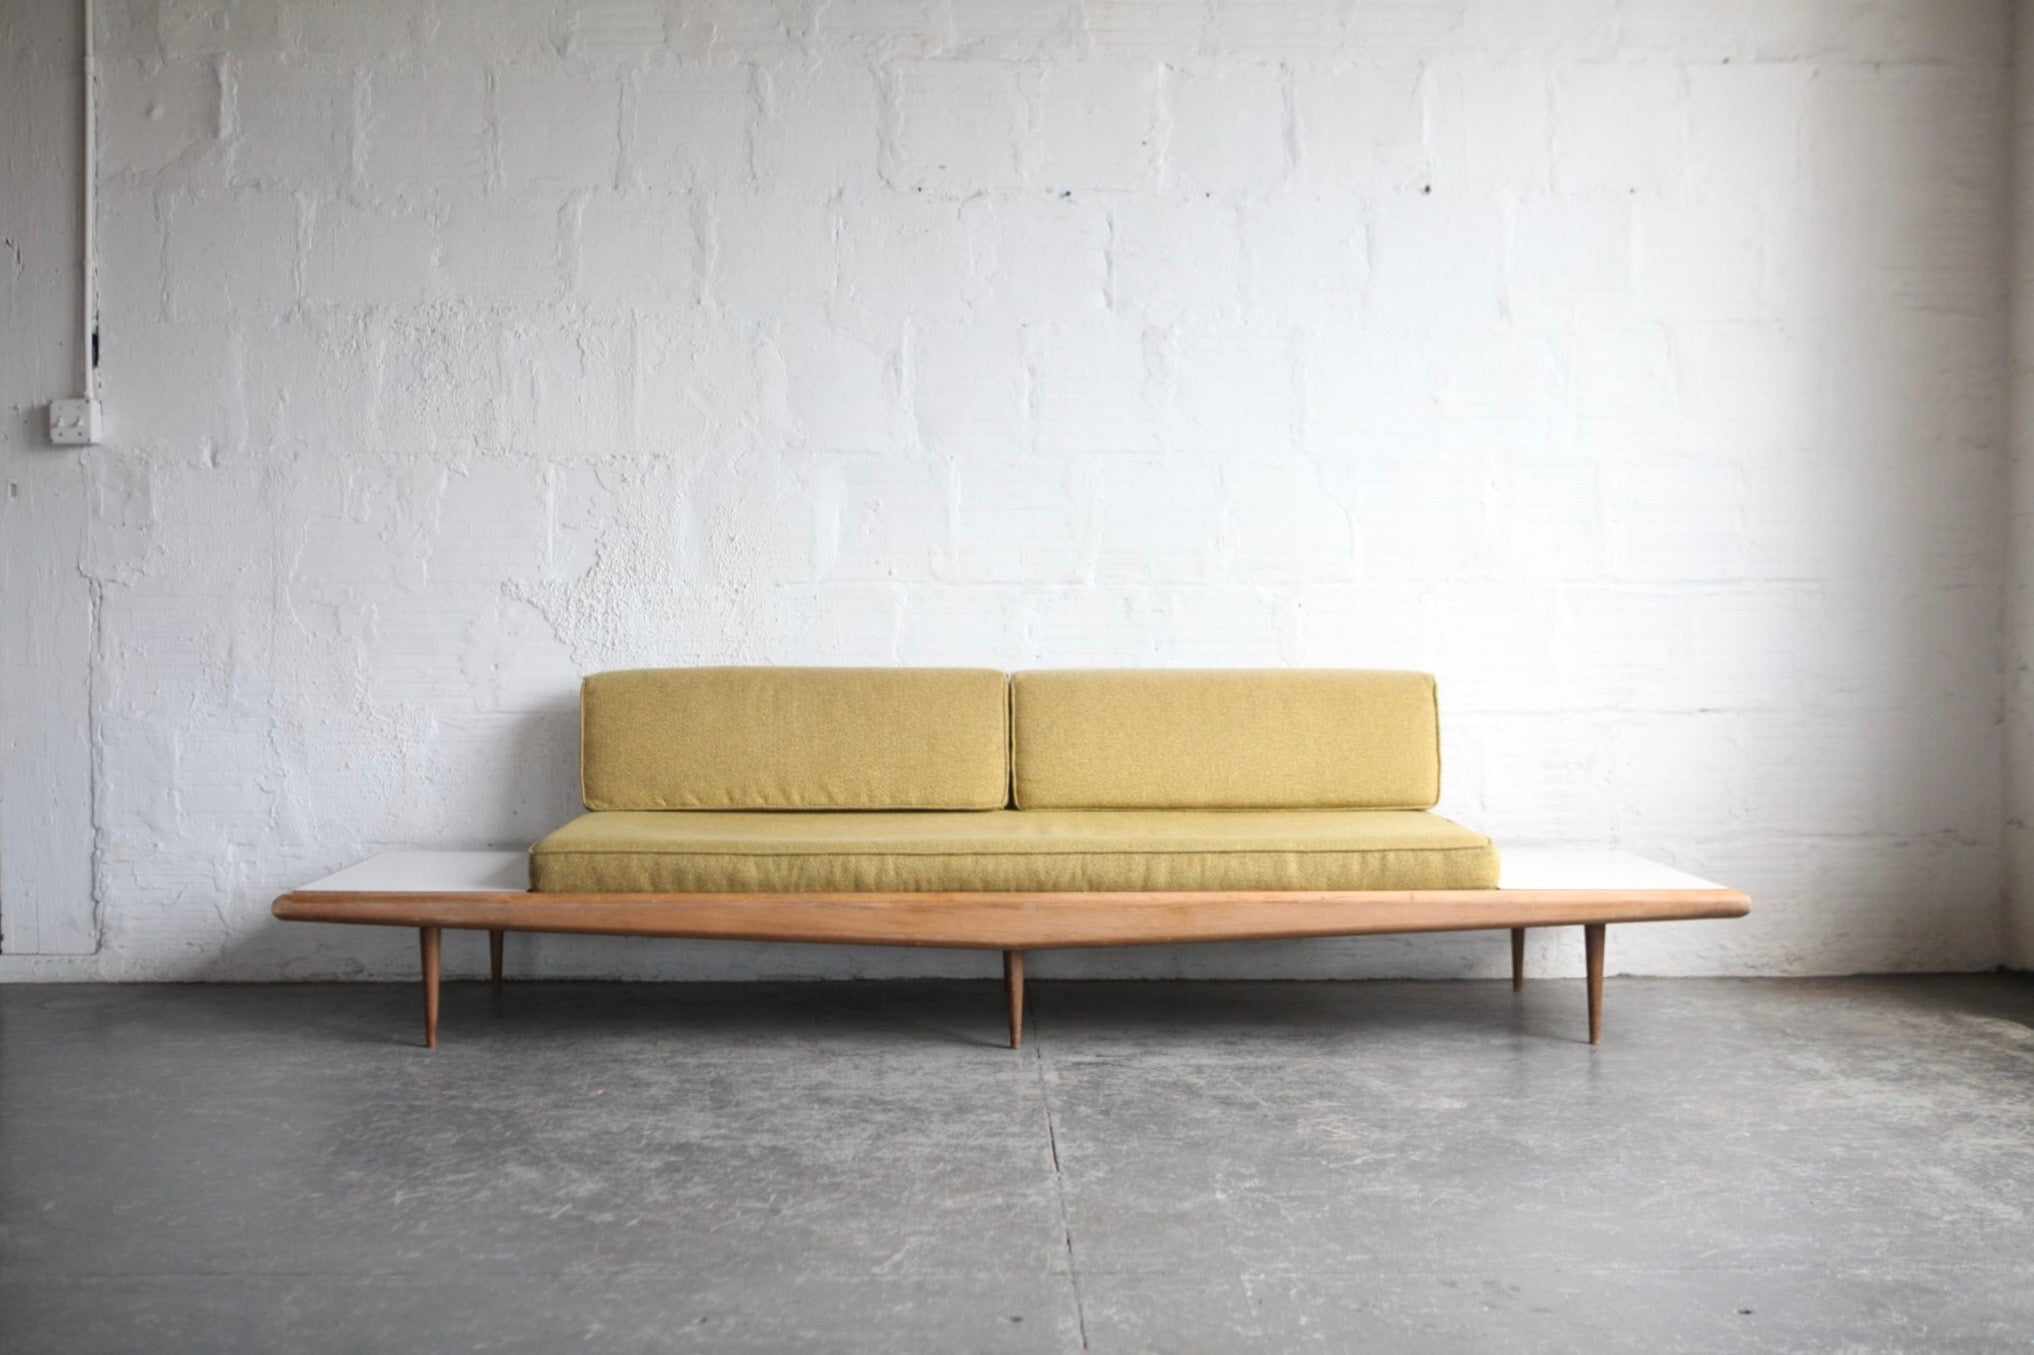 mid century modern sofa with side tables the good mod rh thegoodmod com mid century modern sofa bed mid century modern vintage sofas